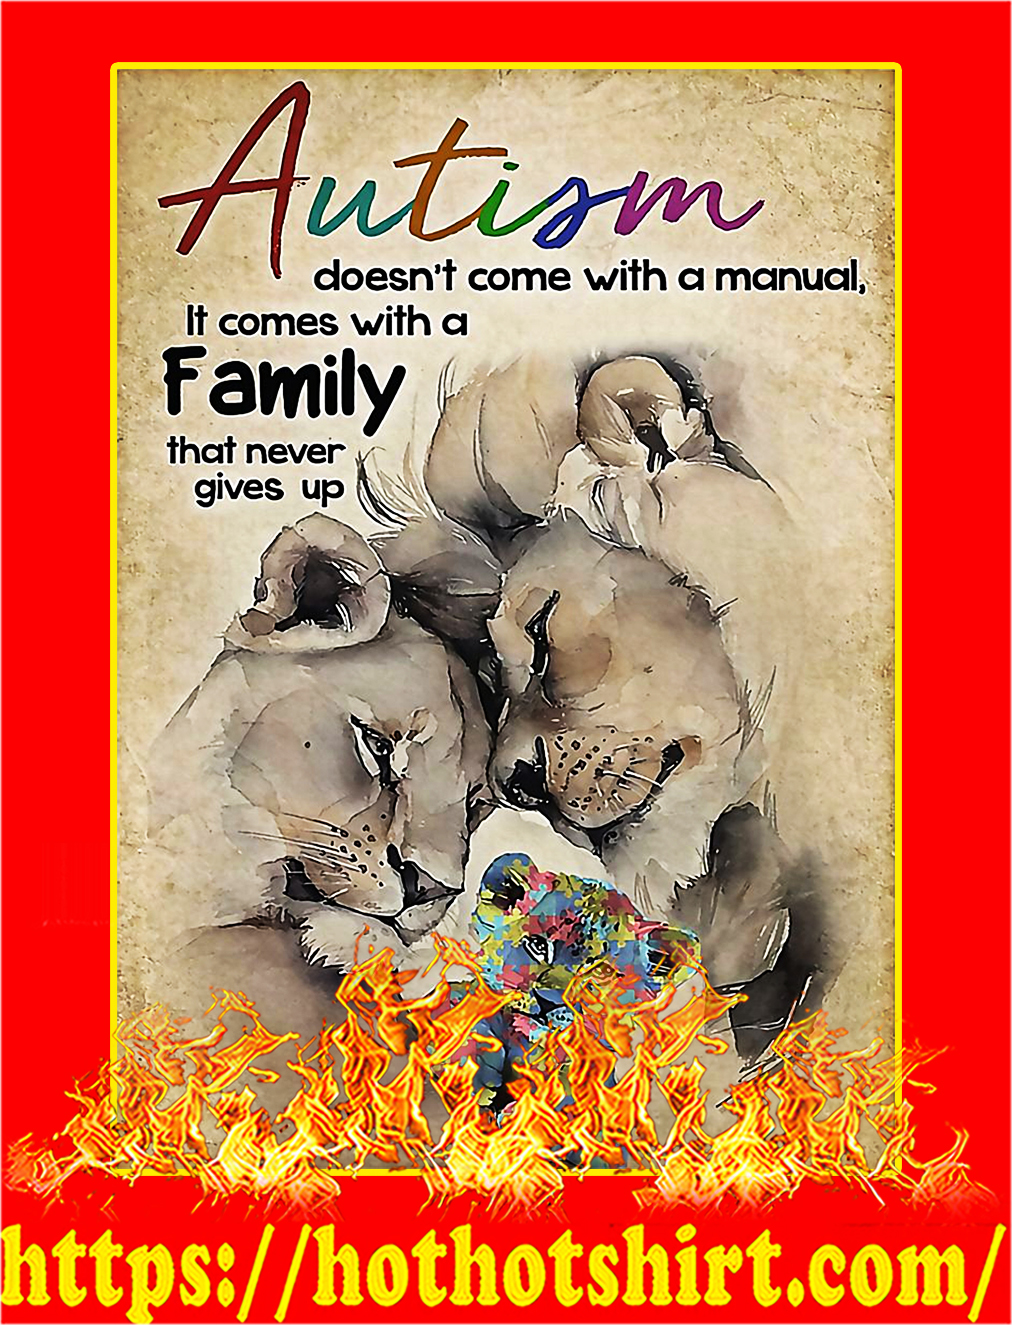 Lion Autism doen't come with a manual it comes with a family that never gives up poster - A4